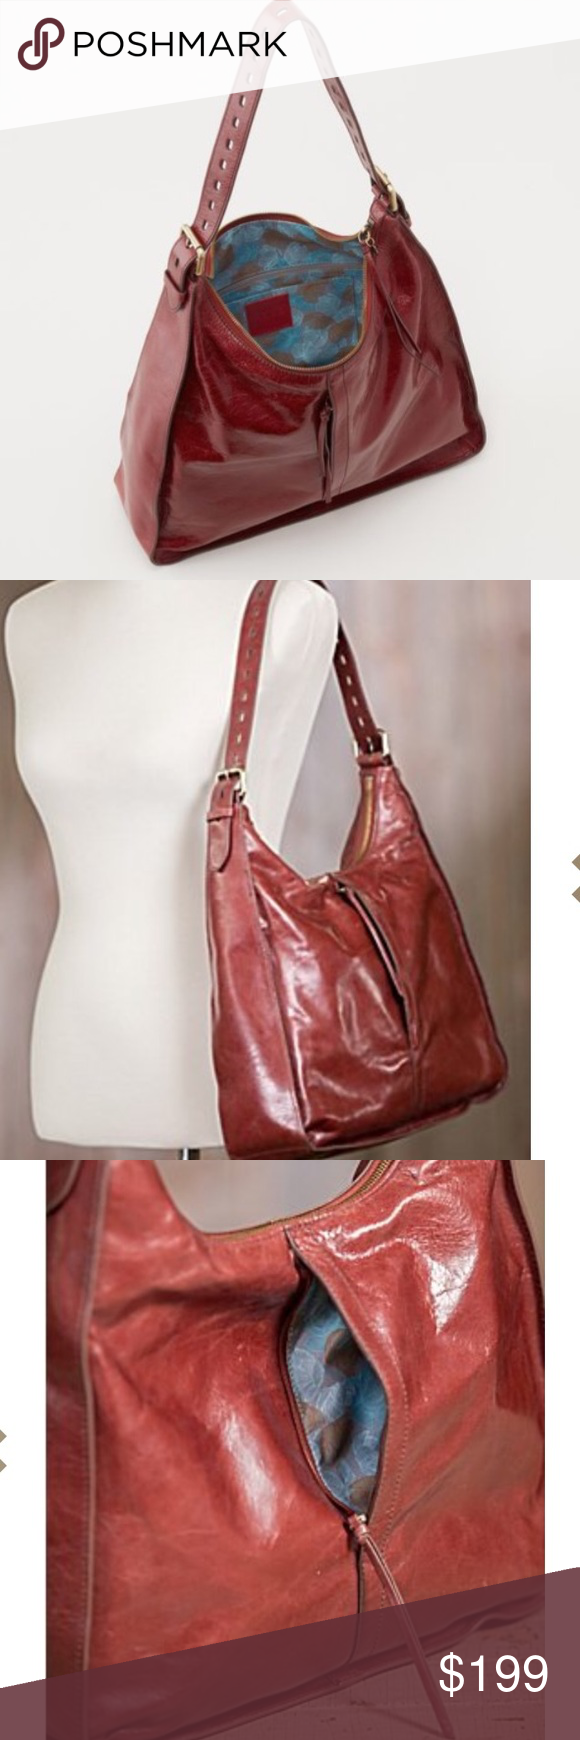 e9899fe8e HOBO Marley Bag in Mahogany Leather Gorgeous leather bag by HOBO  International. Buttery soft leather